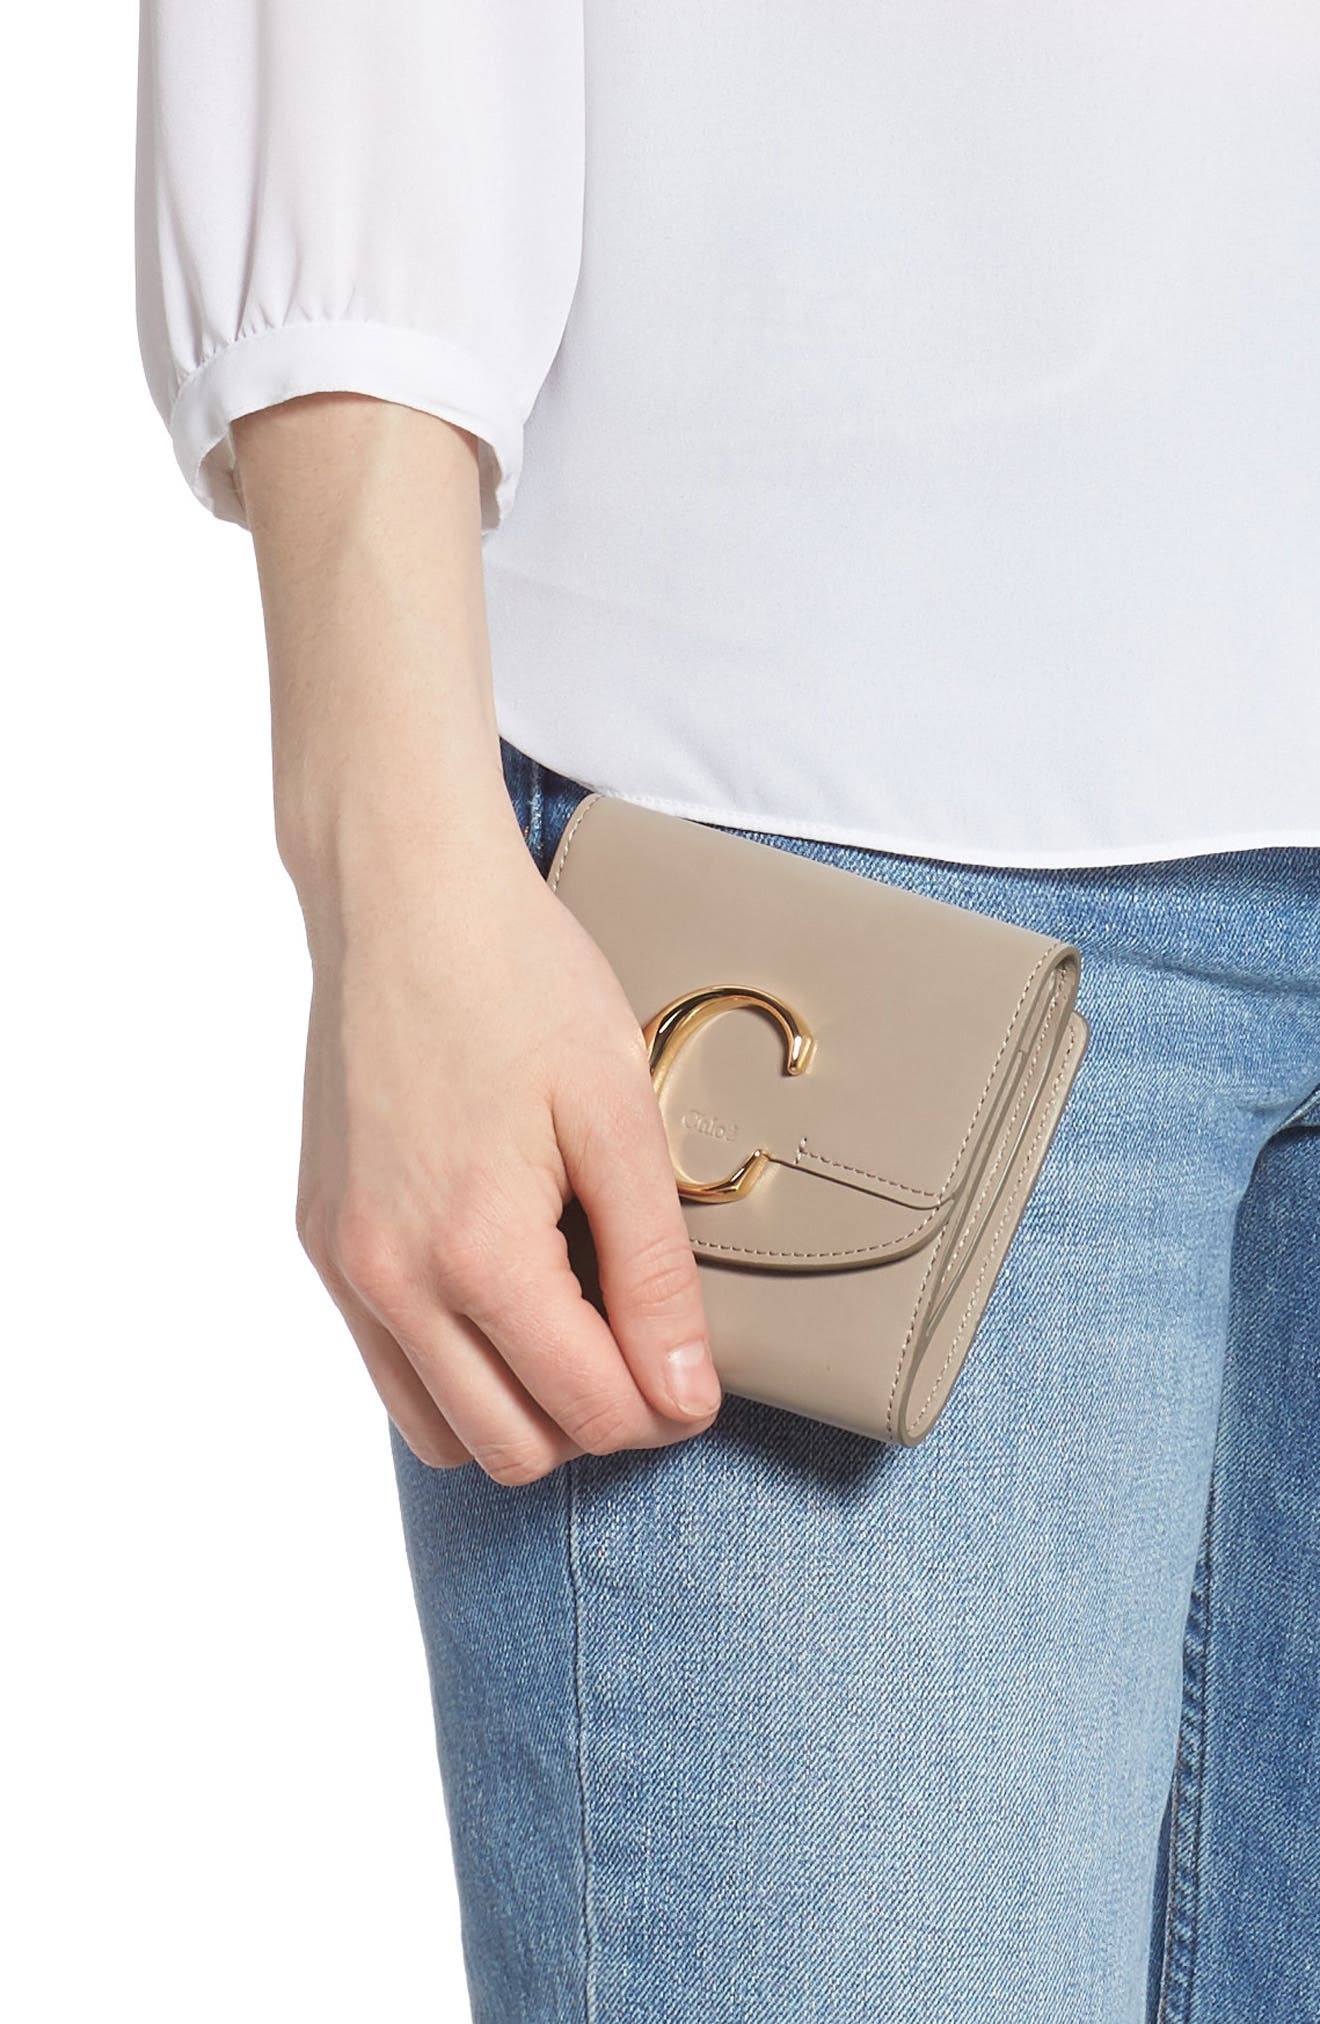 CHLOÉ, Square Leather Wallet, Alternate thumbnail 3, color, MOTTY GREY